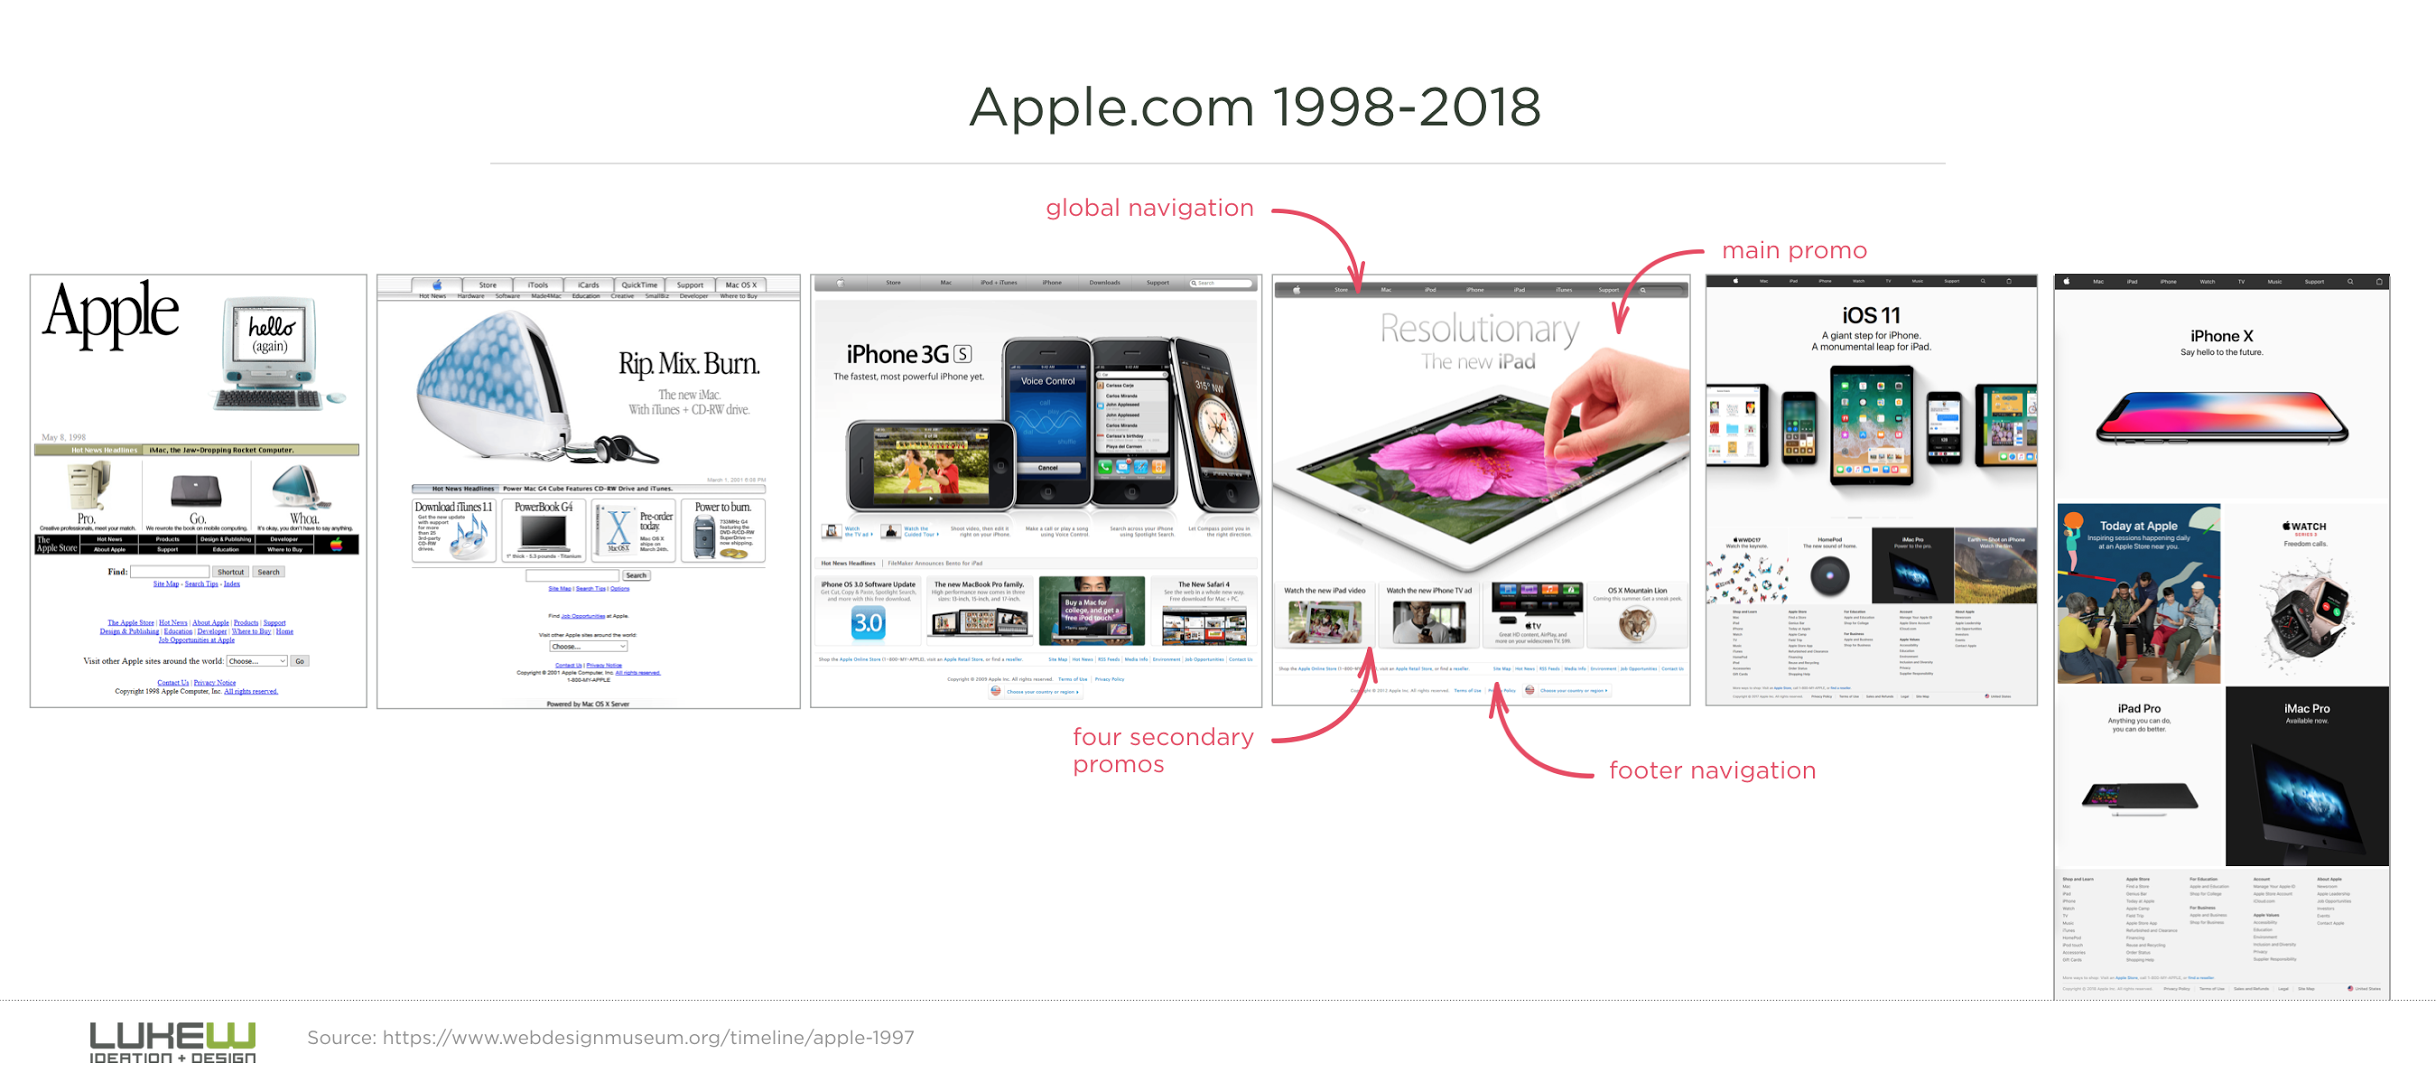 apples website from 1998 and 2018